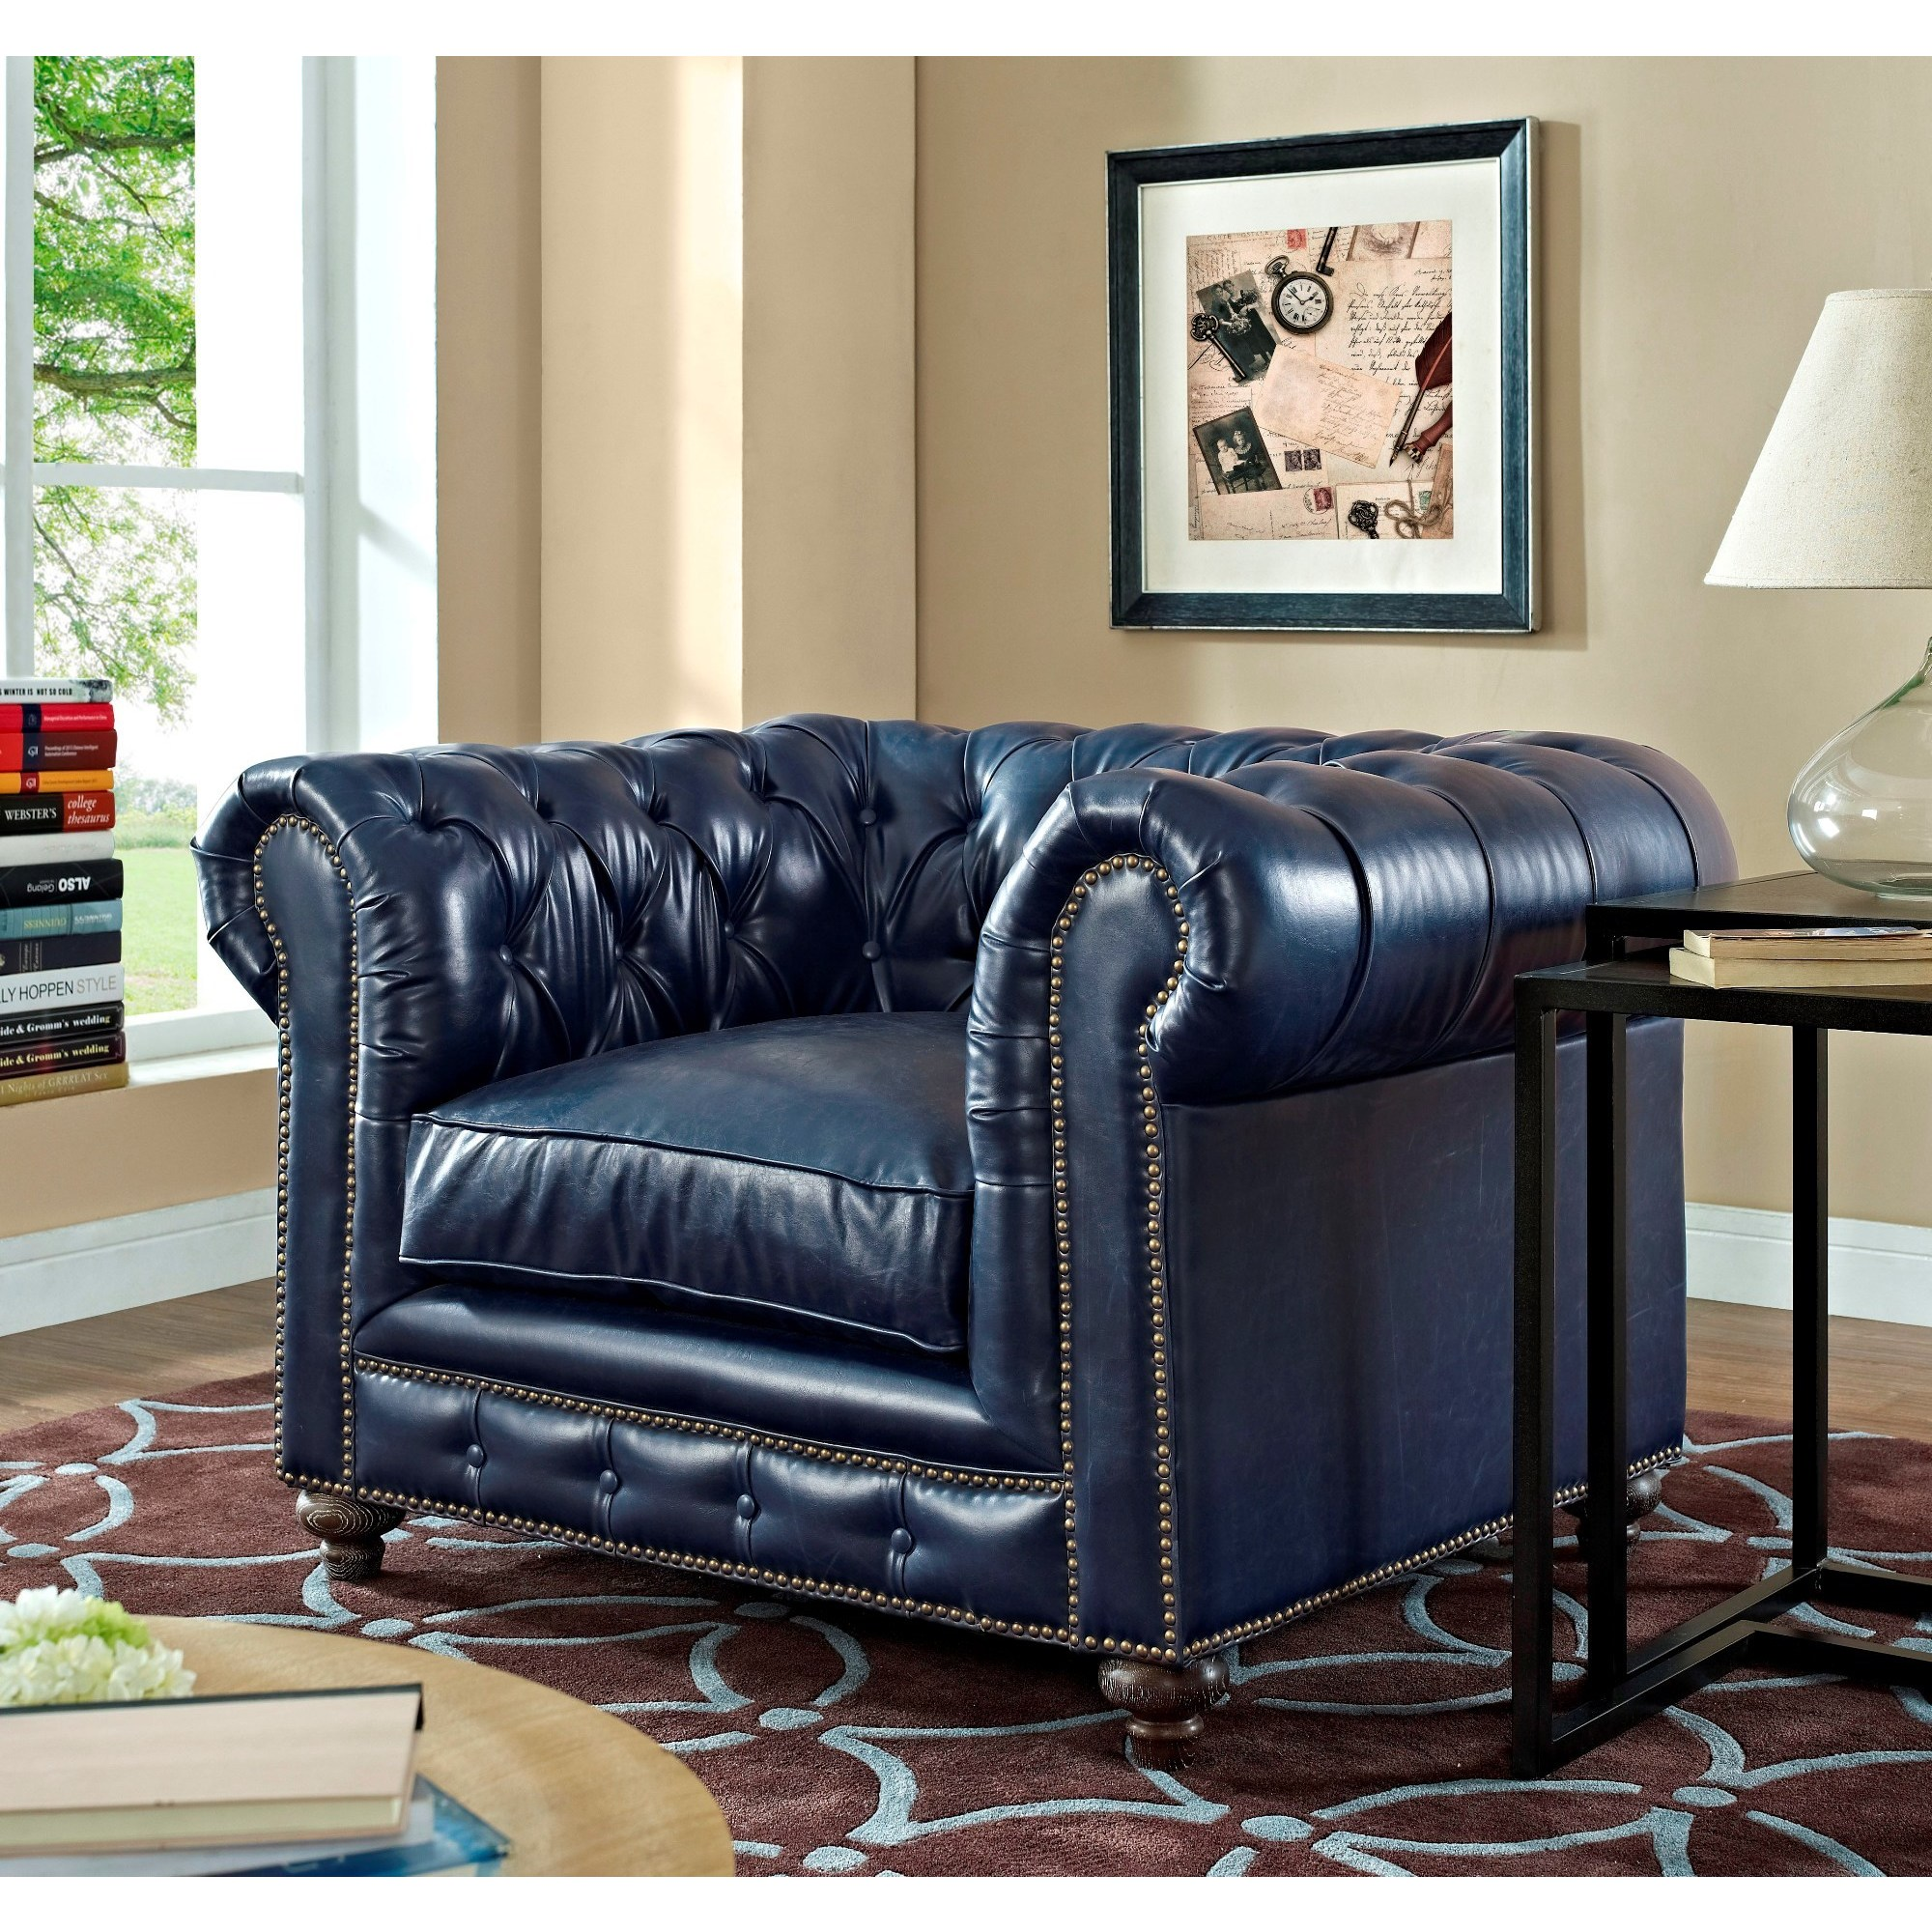 Durango Rustic Blue Leather Living Room Set Free Shipping Today